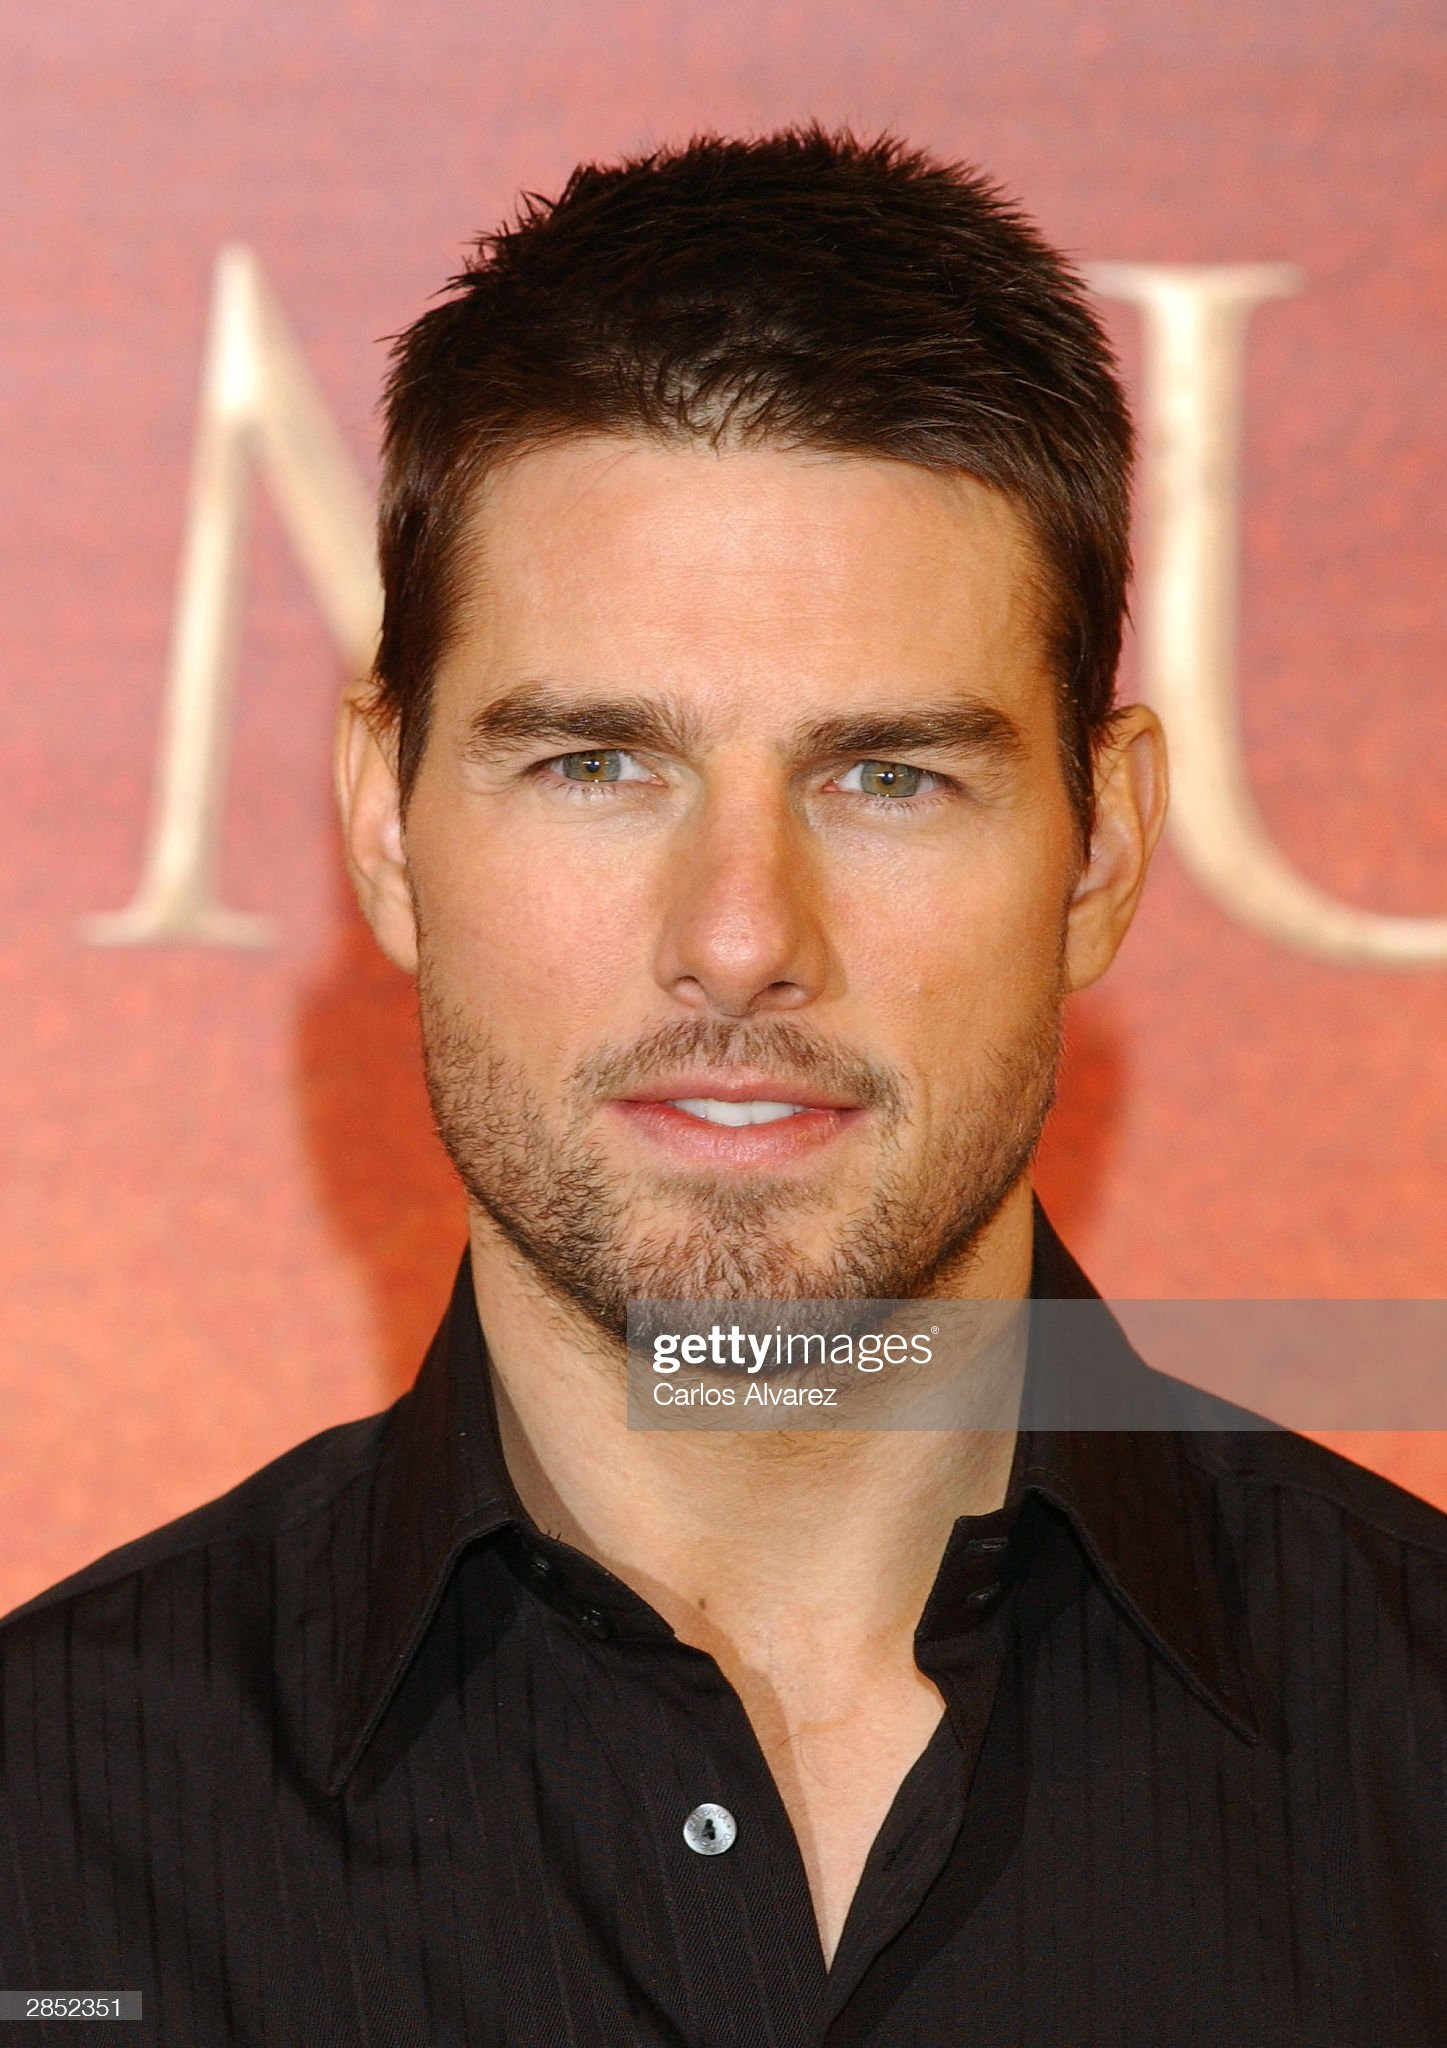 Tom Cruise (Galería de fotos) Actor-tom-cruise-attends-the-spanish-photocall-of-the-last-samurai-at-picture-id2852351?s=2048x2048